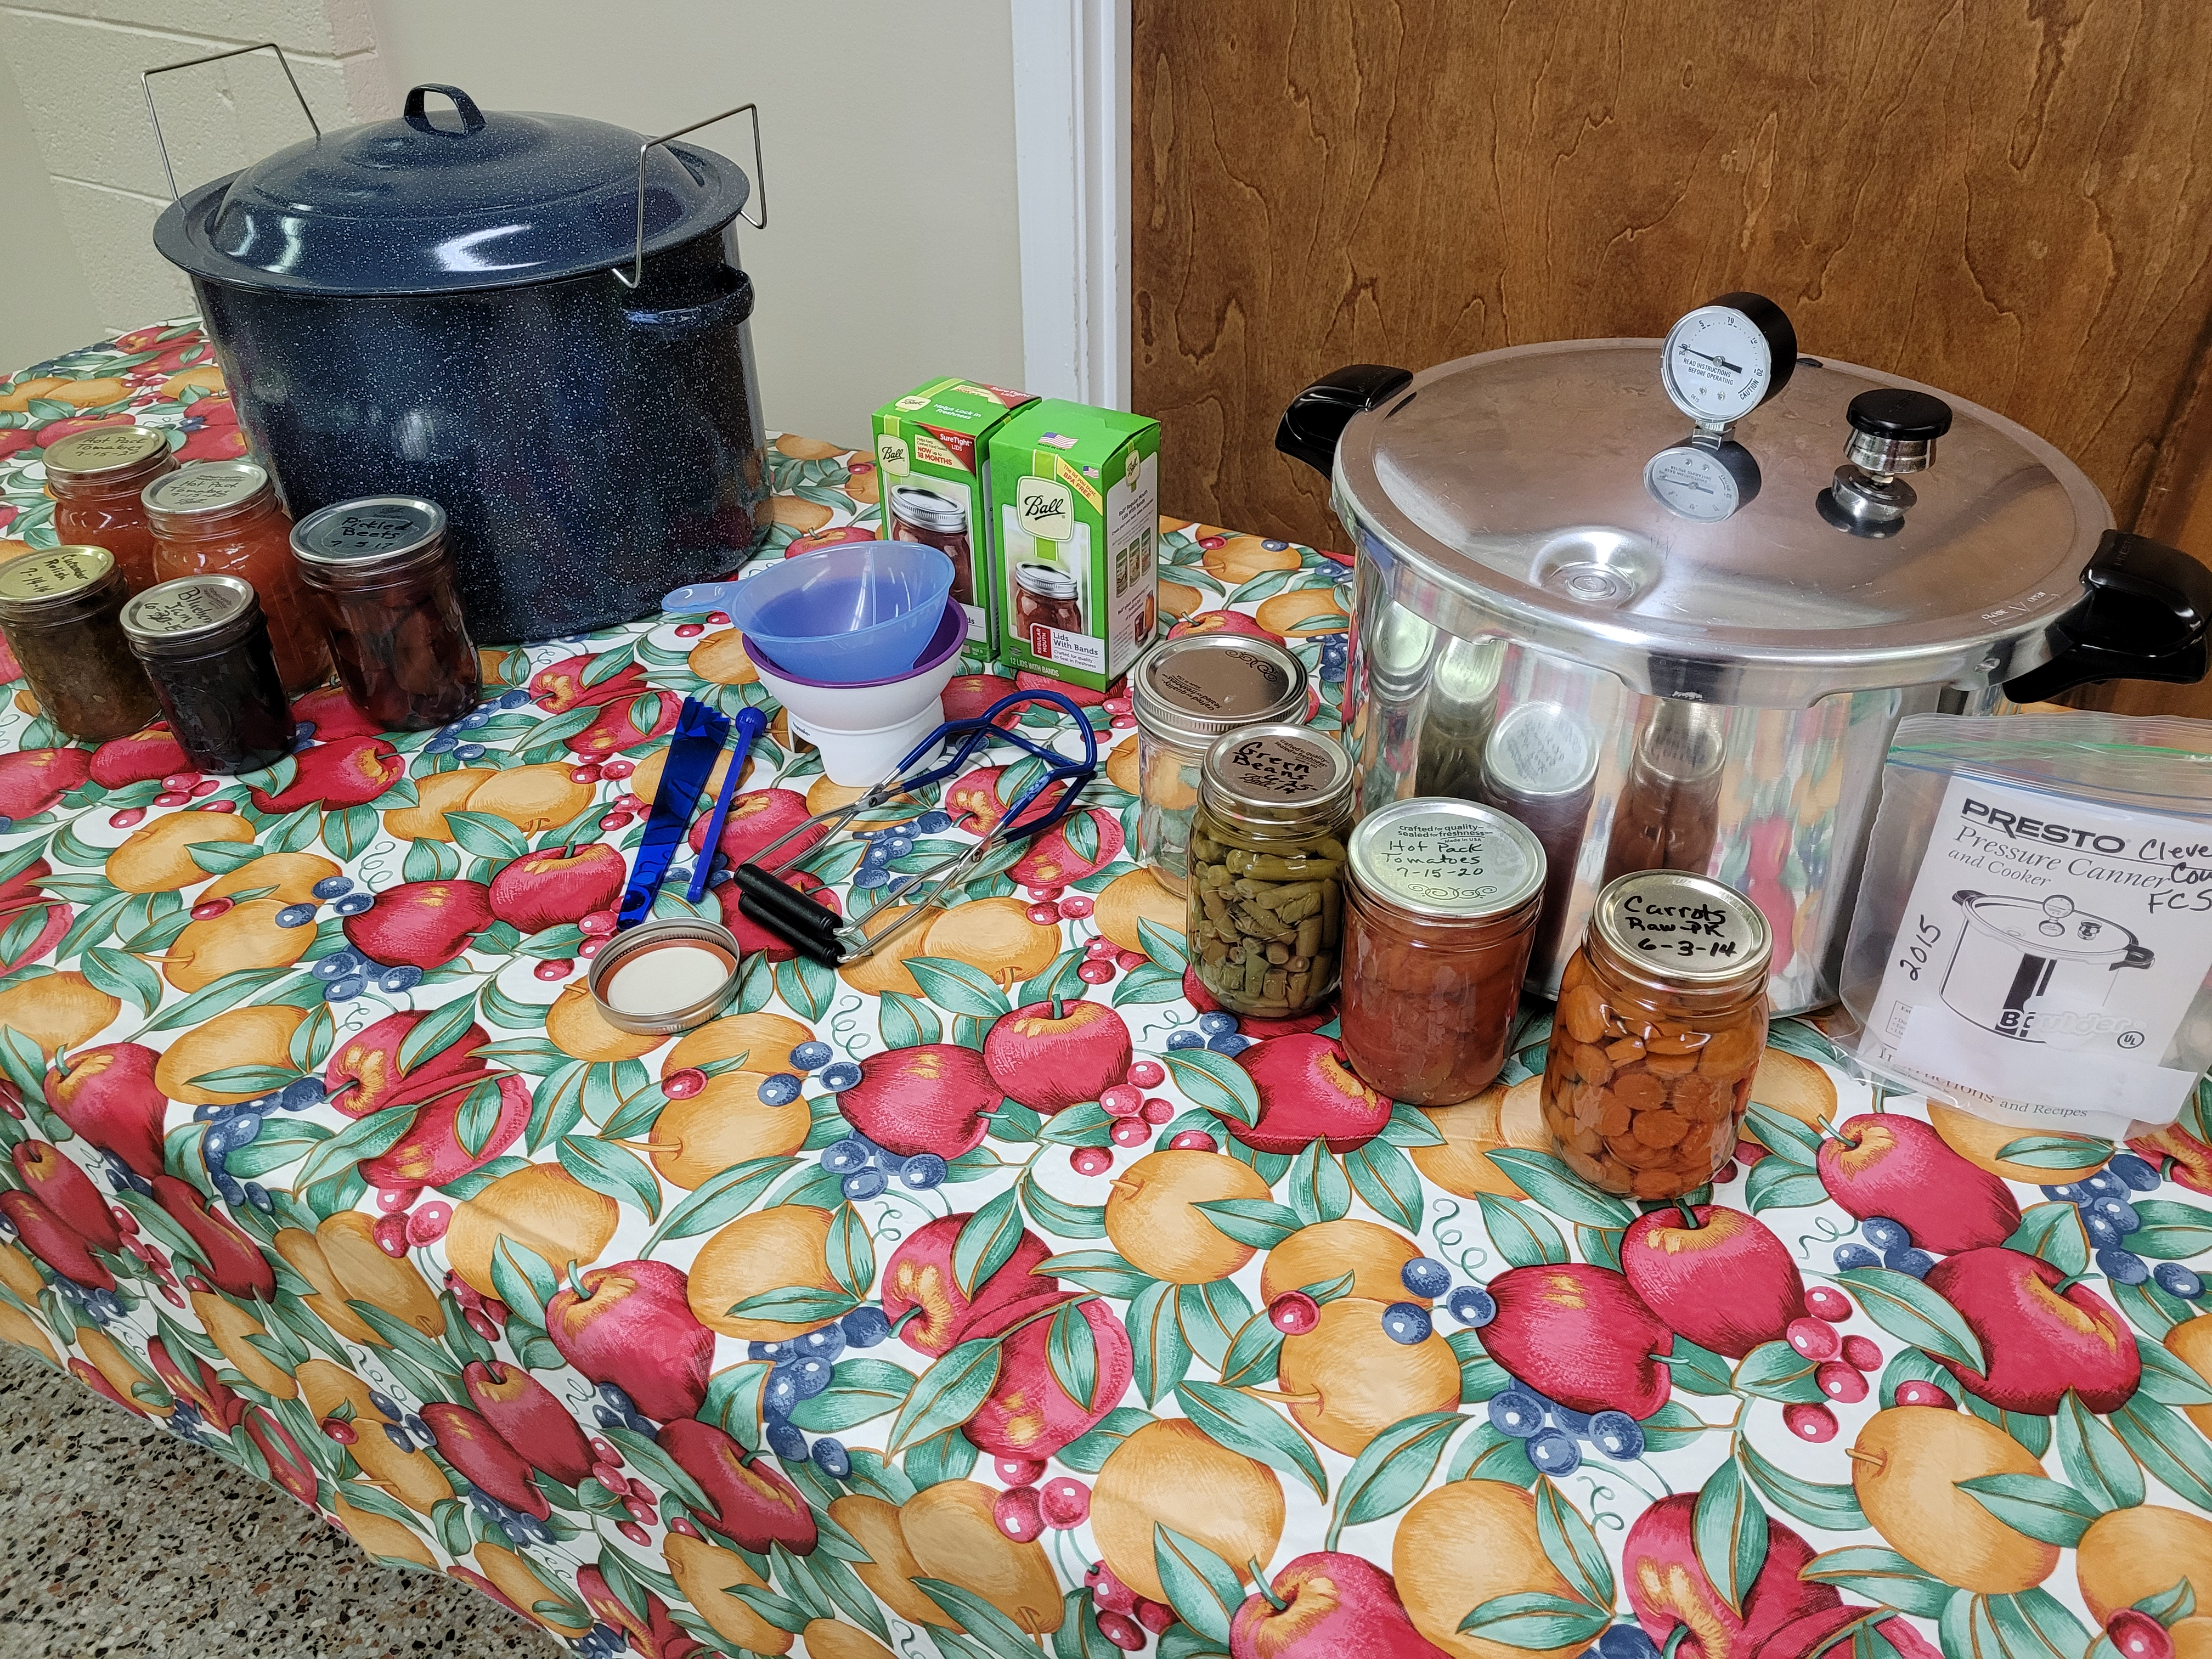 Pressure canner and jars on table